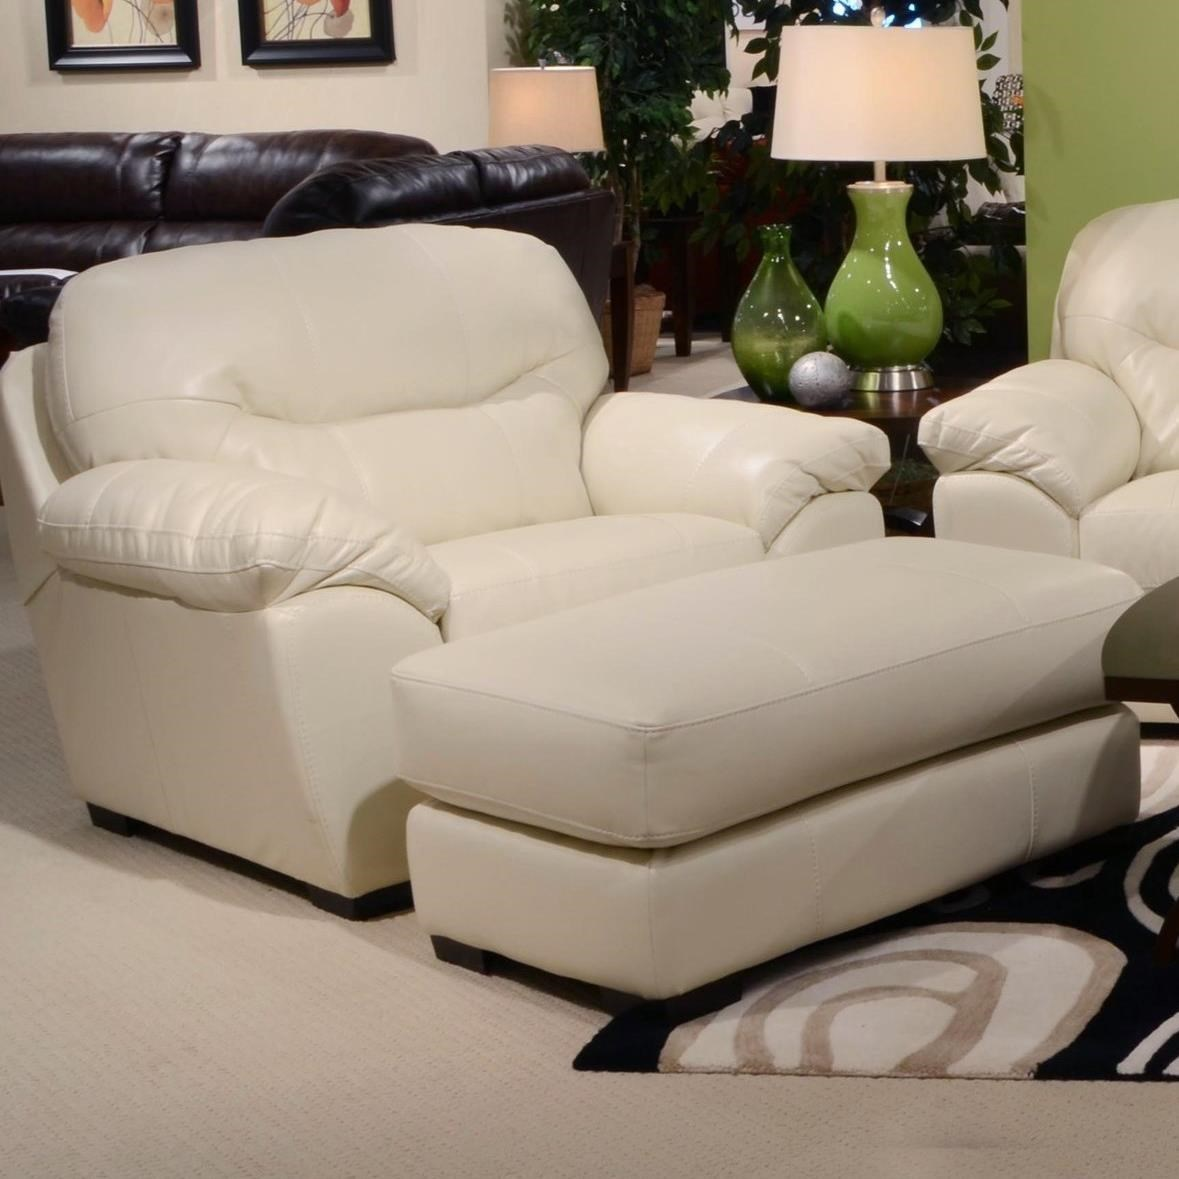 Jackson Furniture Jordan Chair And A Half And Ottoman Set For Living Rooms  And Family Rooms